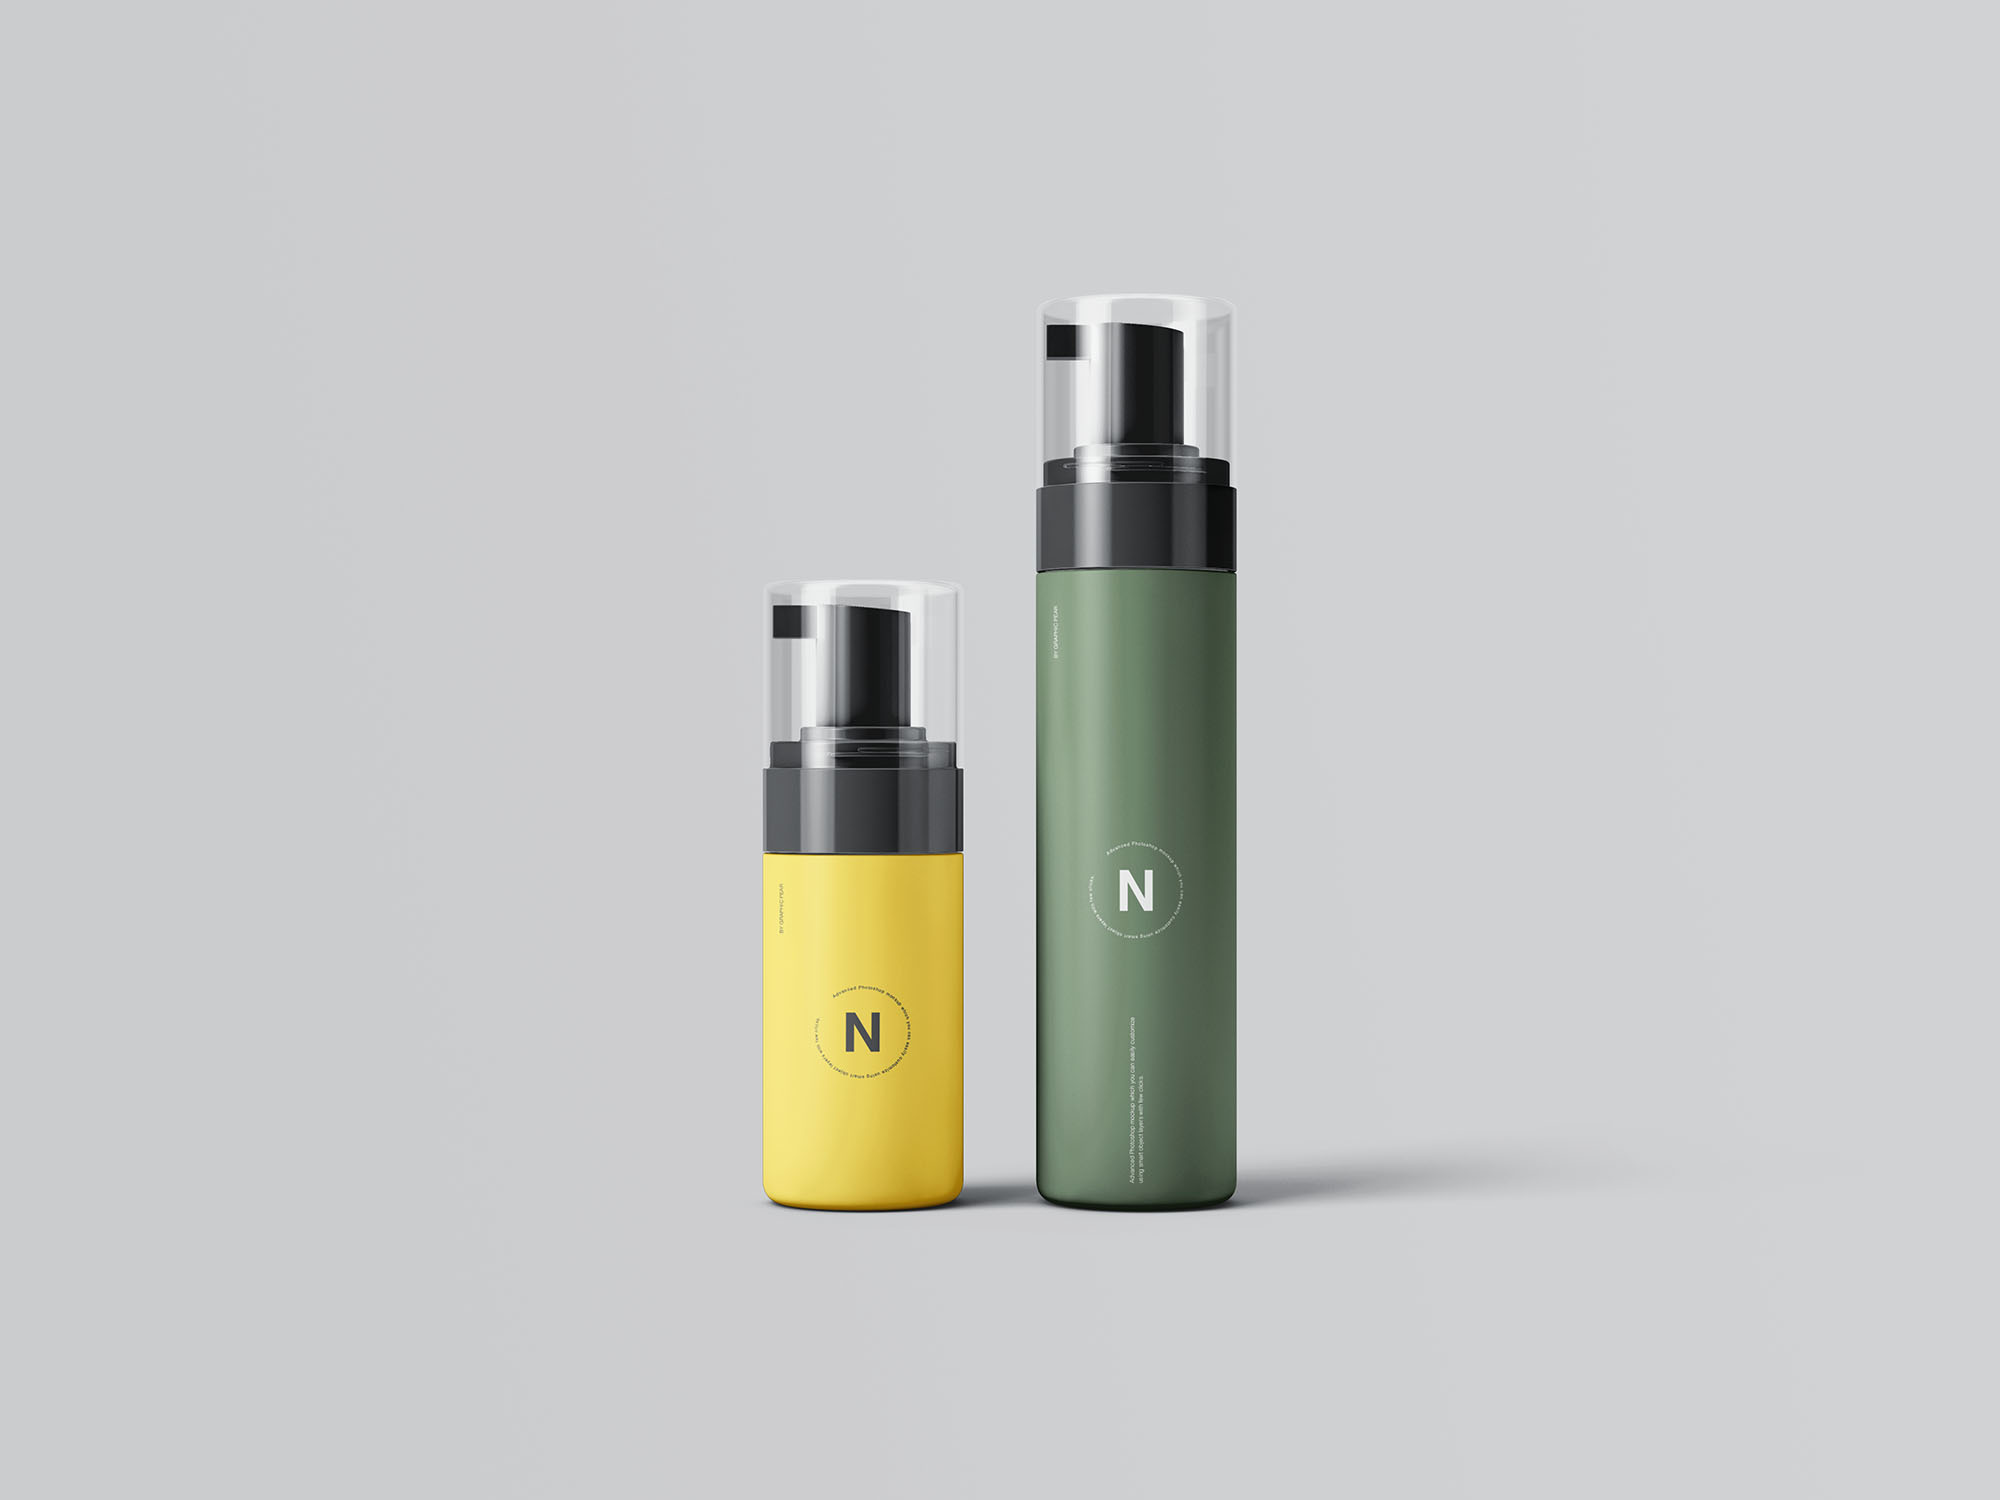 Cosmetic Bottles Packaging Mockup 2